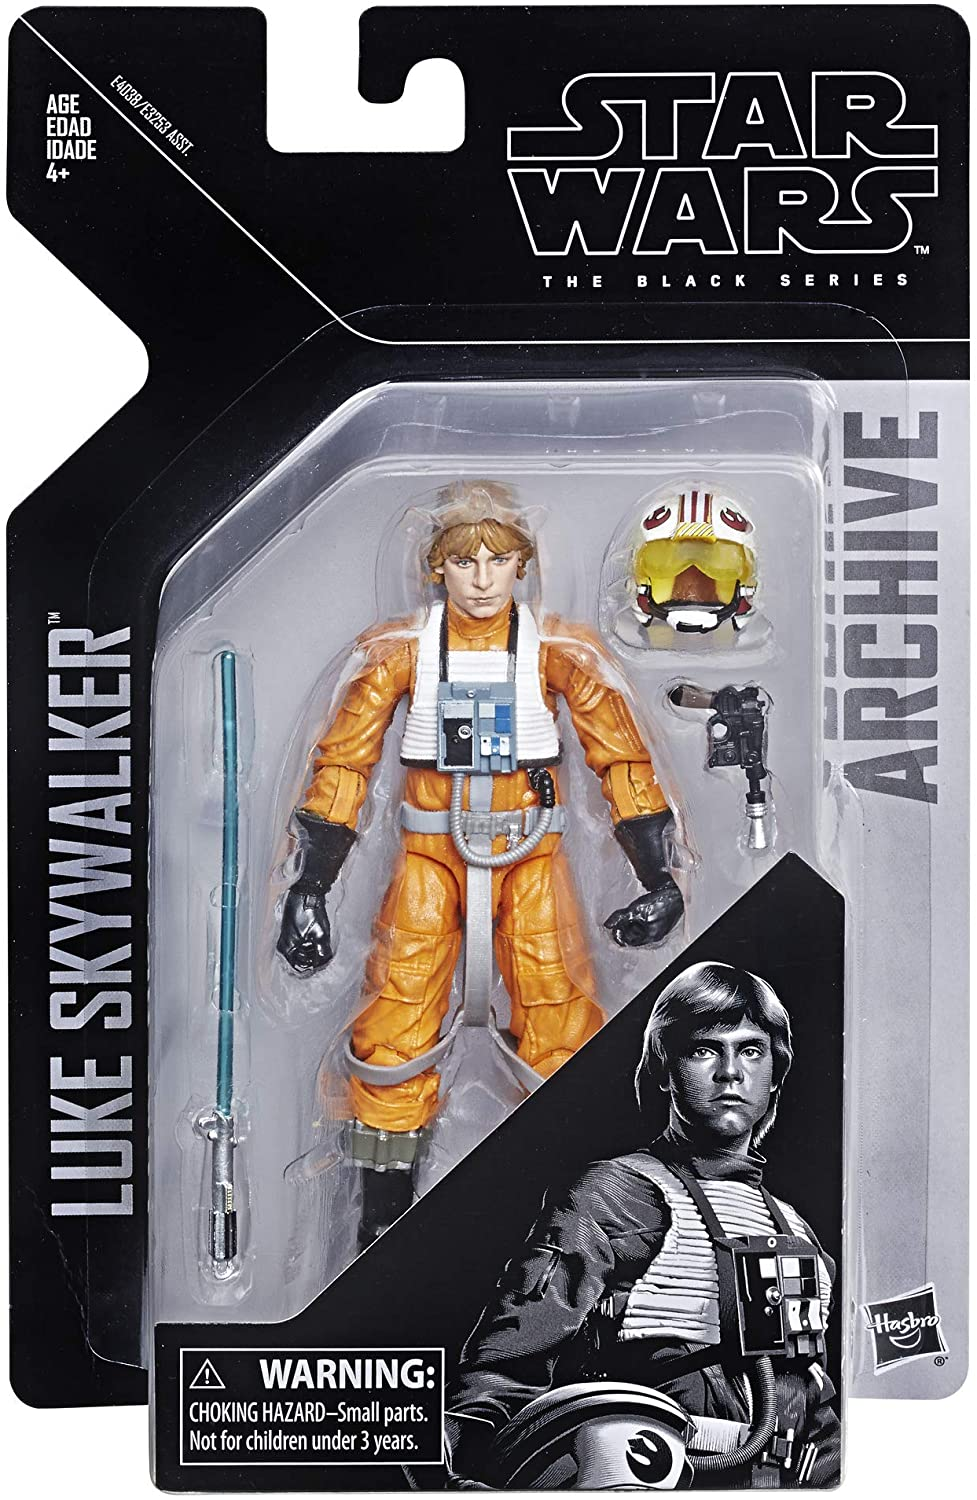 Star Wars The Black Series - Luke Skywalker - Hasbro